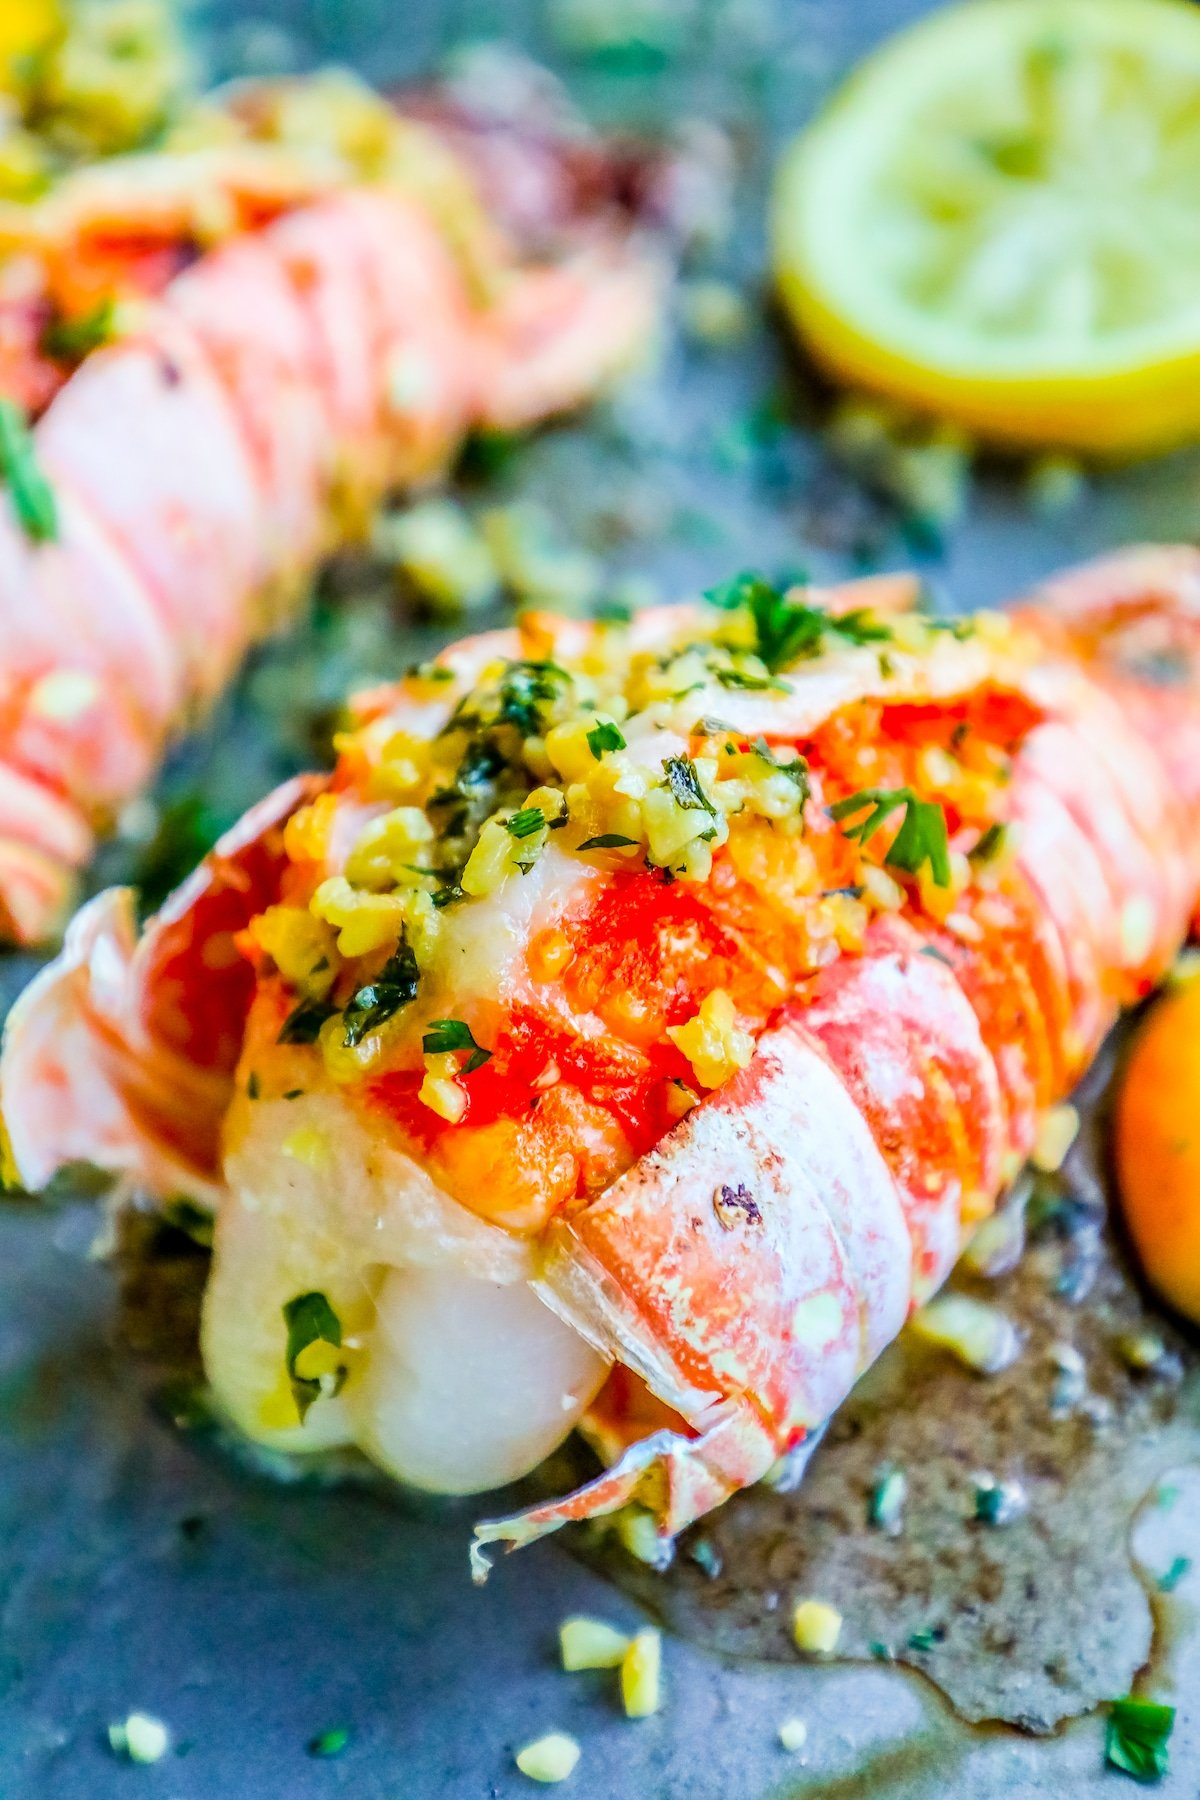 lobster tails, how to cook lobster, valentines lobster dinner, easy lobster, oven lobster, how to cook lobster in the oven, easy lobster tails, lemon garlic butter lobster tails, lemon garlic lobster, lobster tail recipe